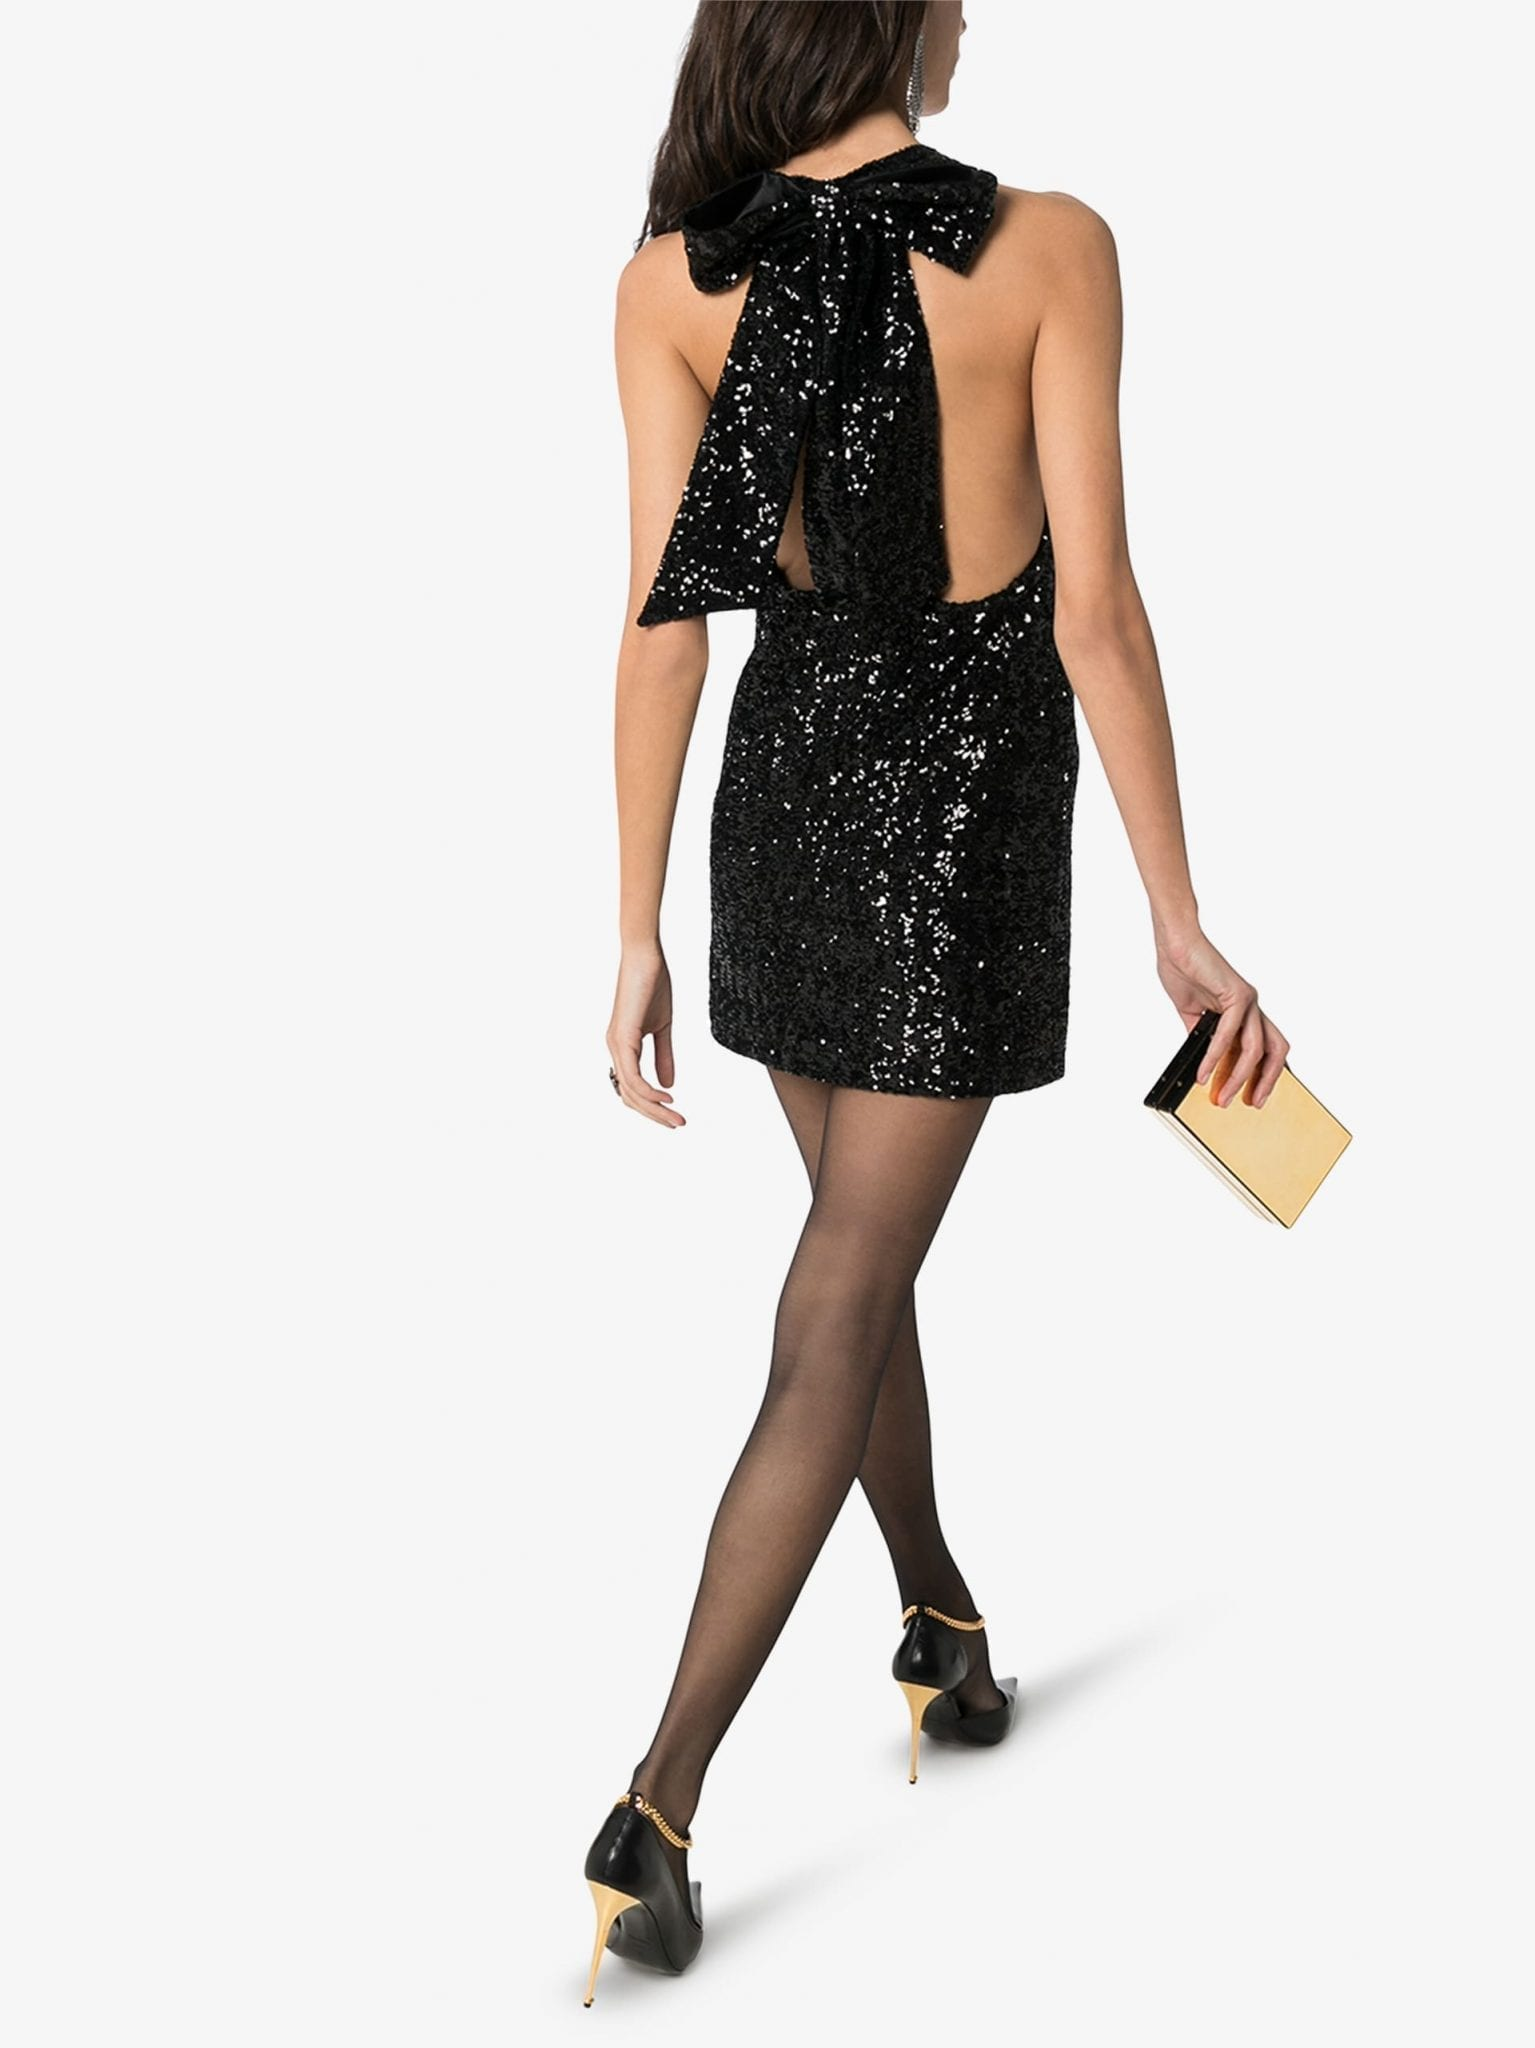 SAINT LAURENT Plunging Sequin Mini Dress